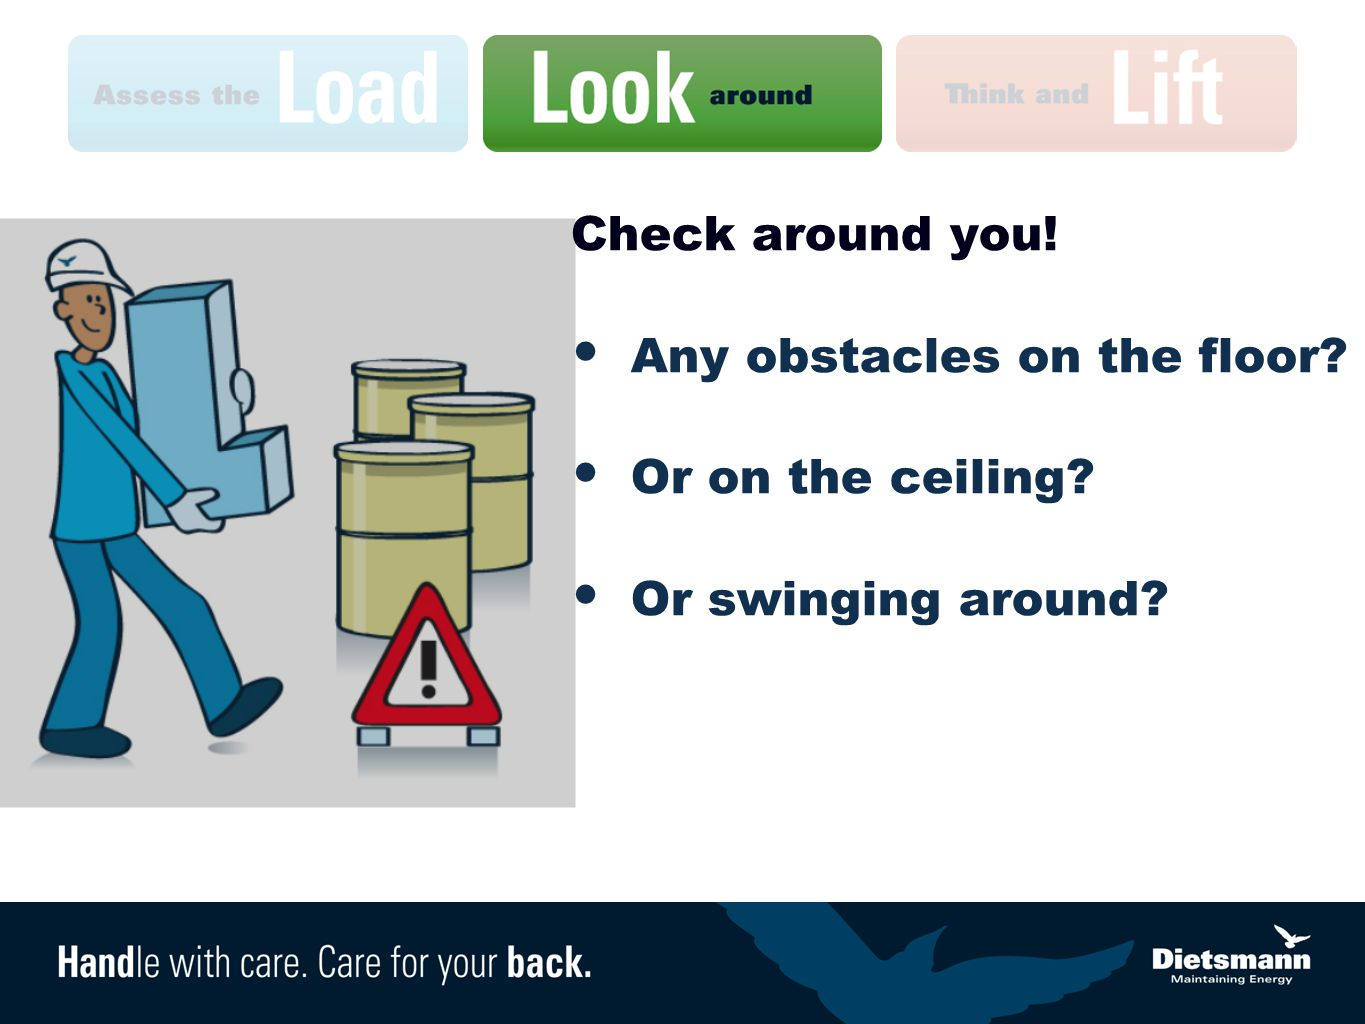 Check around you! Any obstacles on the floor? Or on the ceiling? Or swinging around?